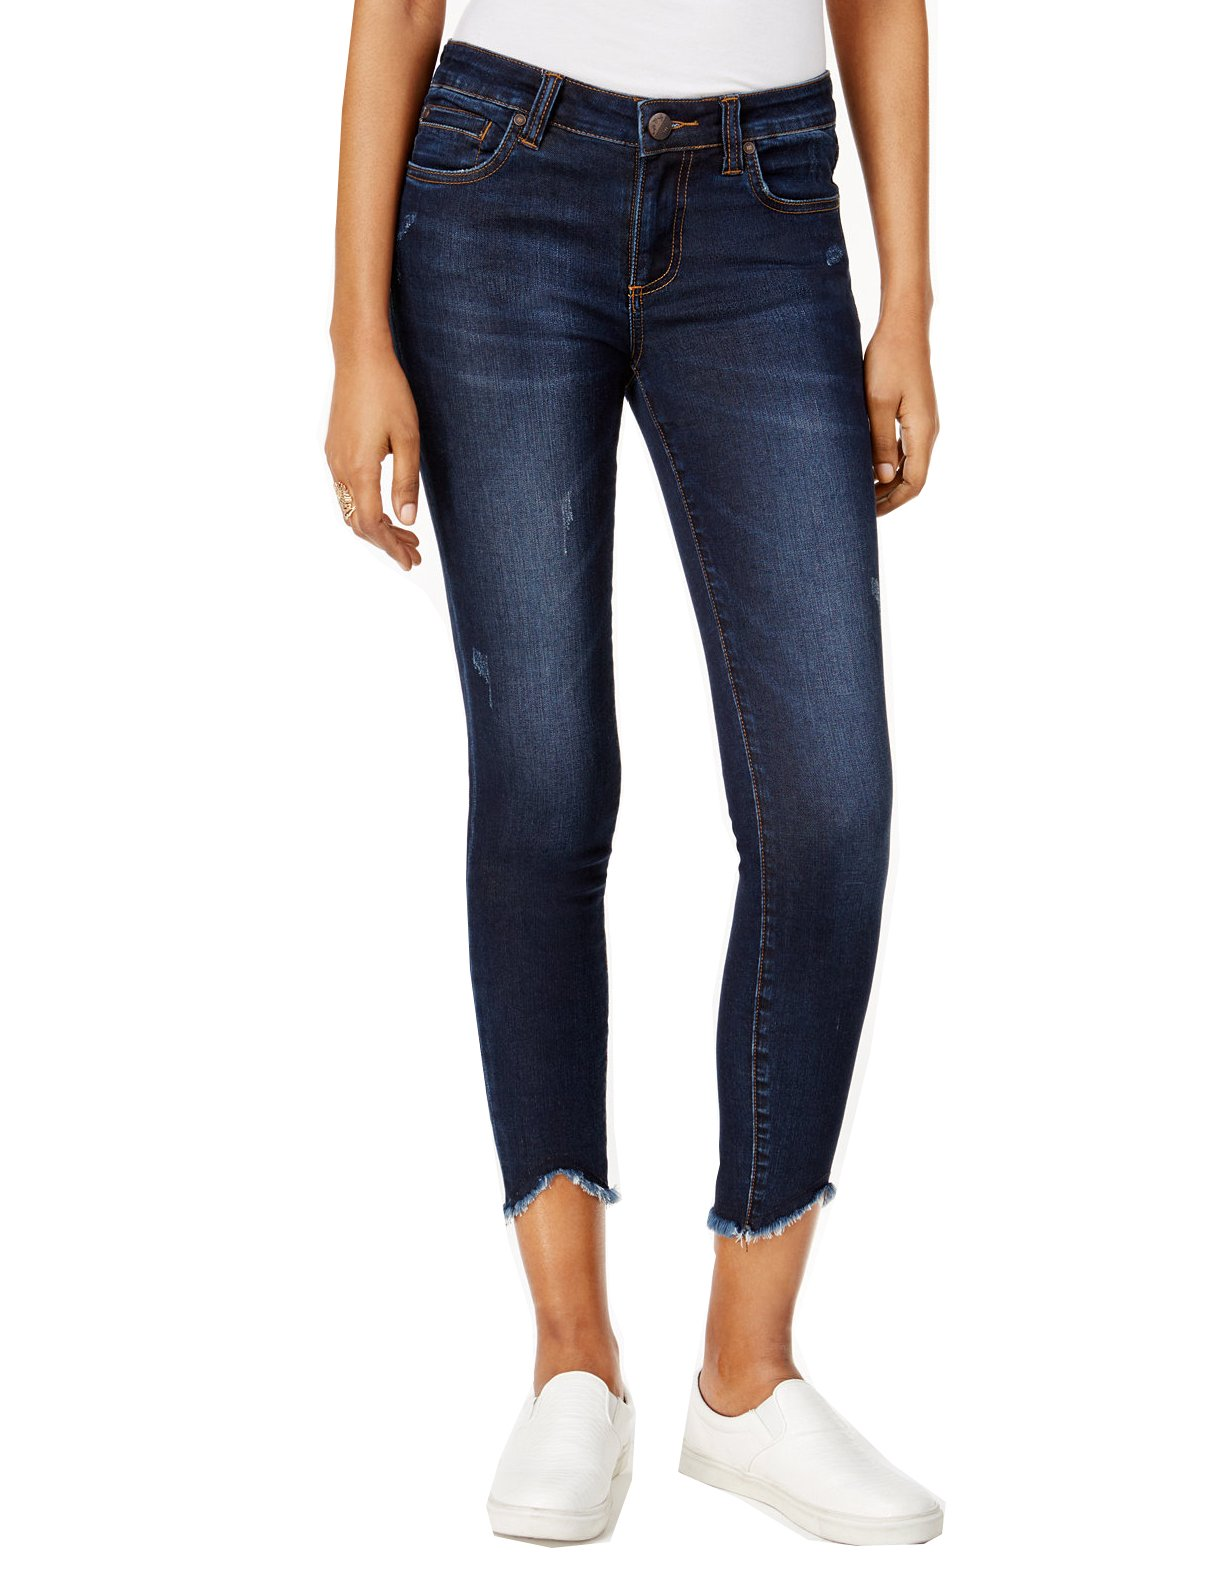 KUT from the Kloth Women's Connie Ankle Skinny-w/ Uneven Hem in Benefic w/ Dark Stone Base Wash Benefic/Dark Stone Base Wash 8